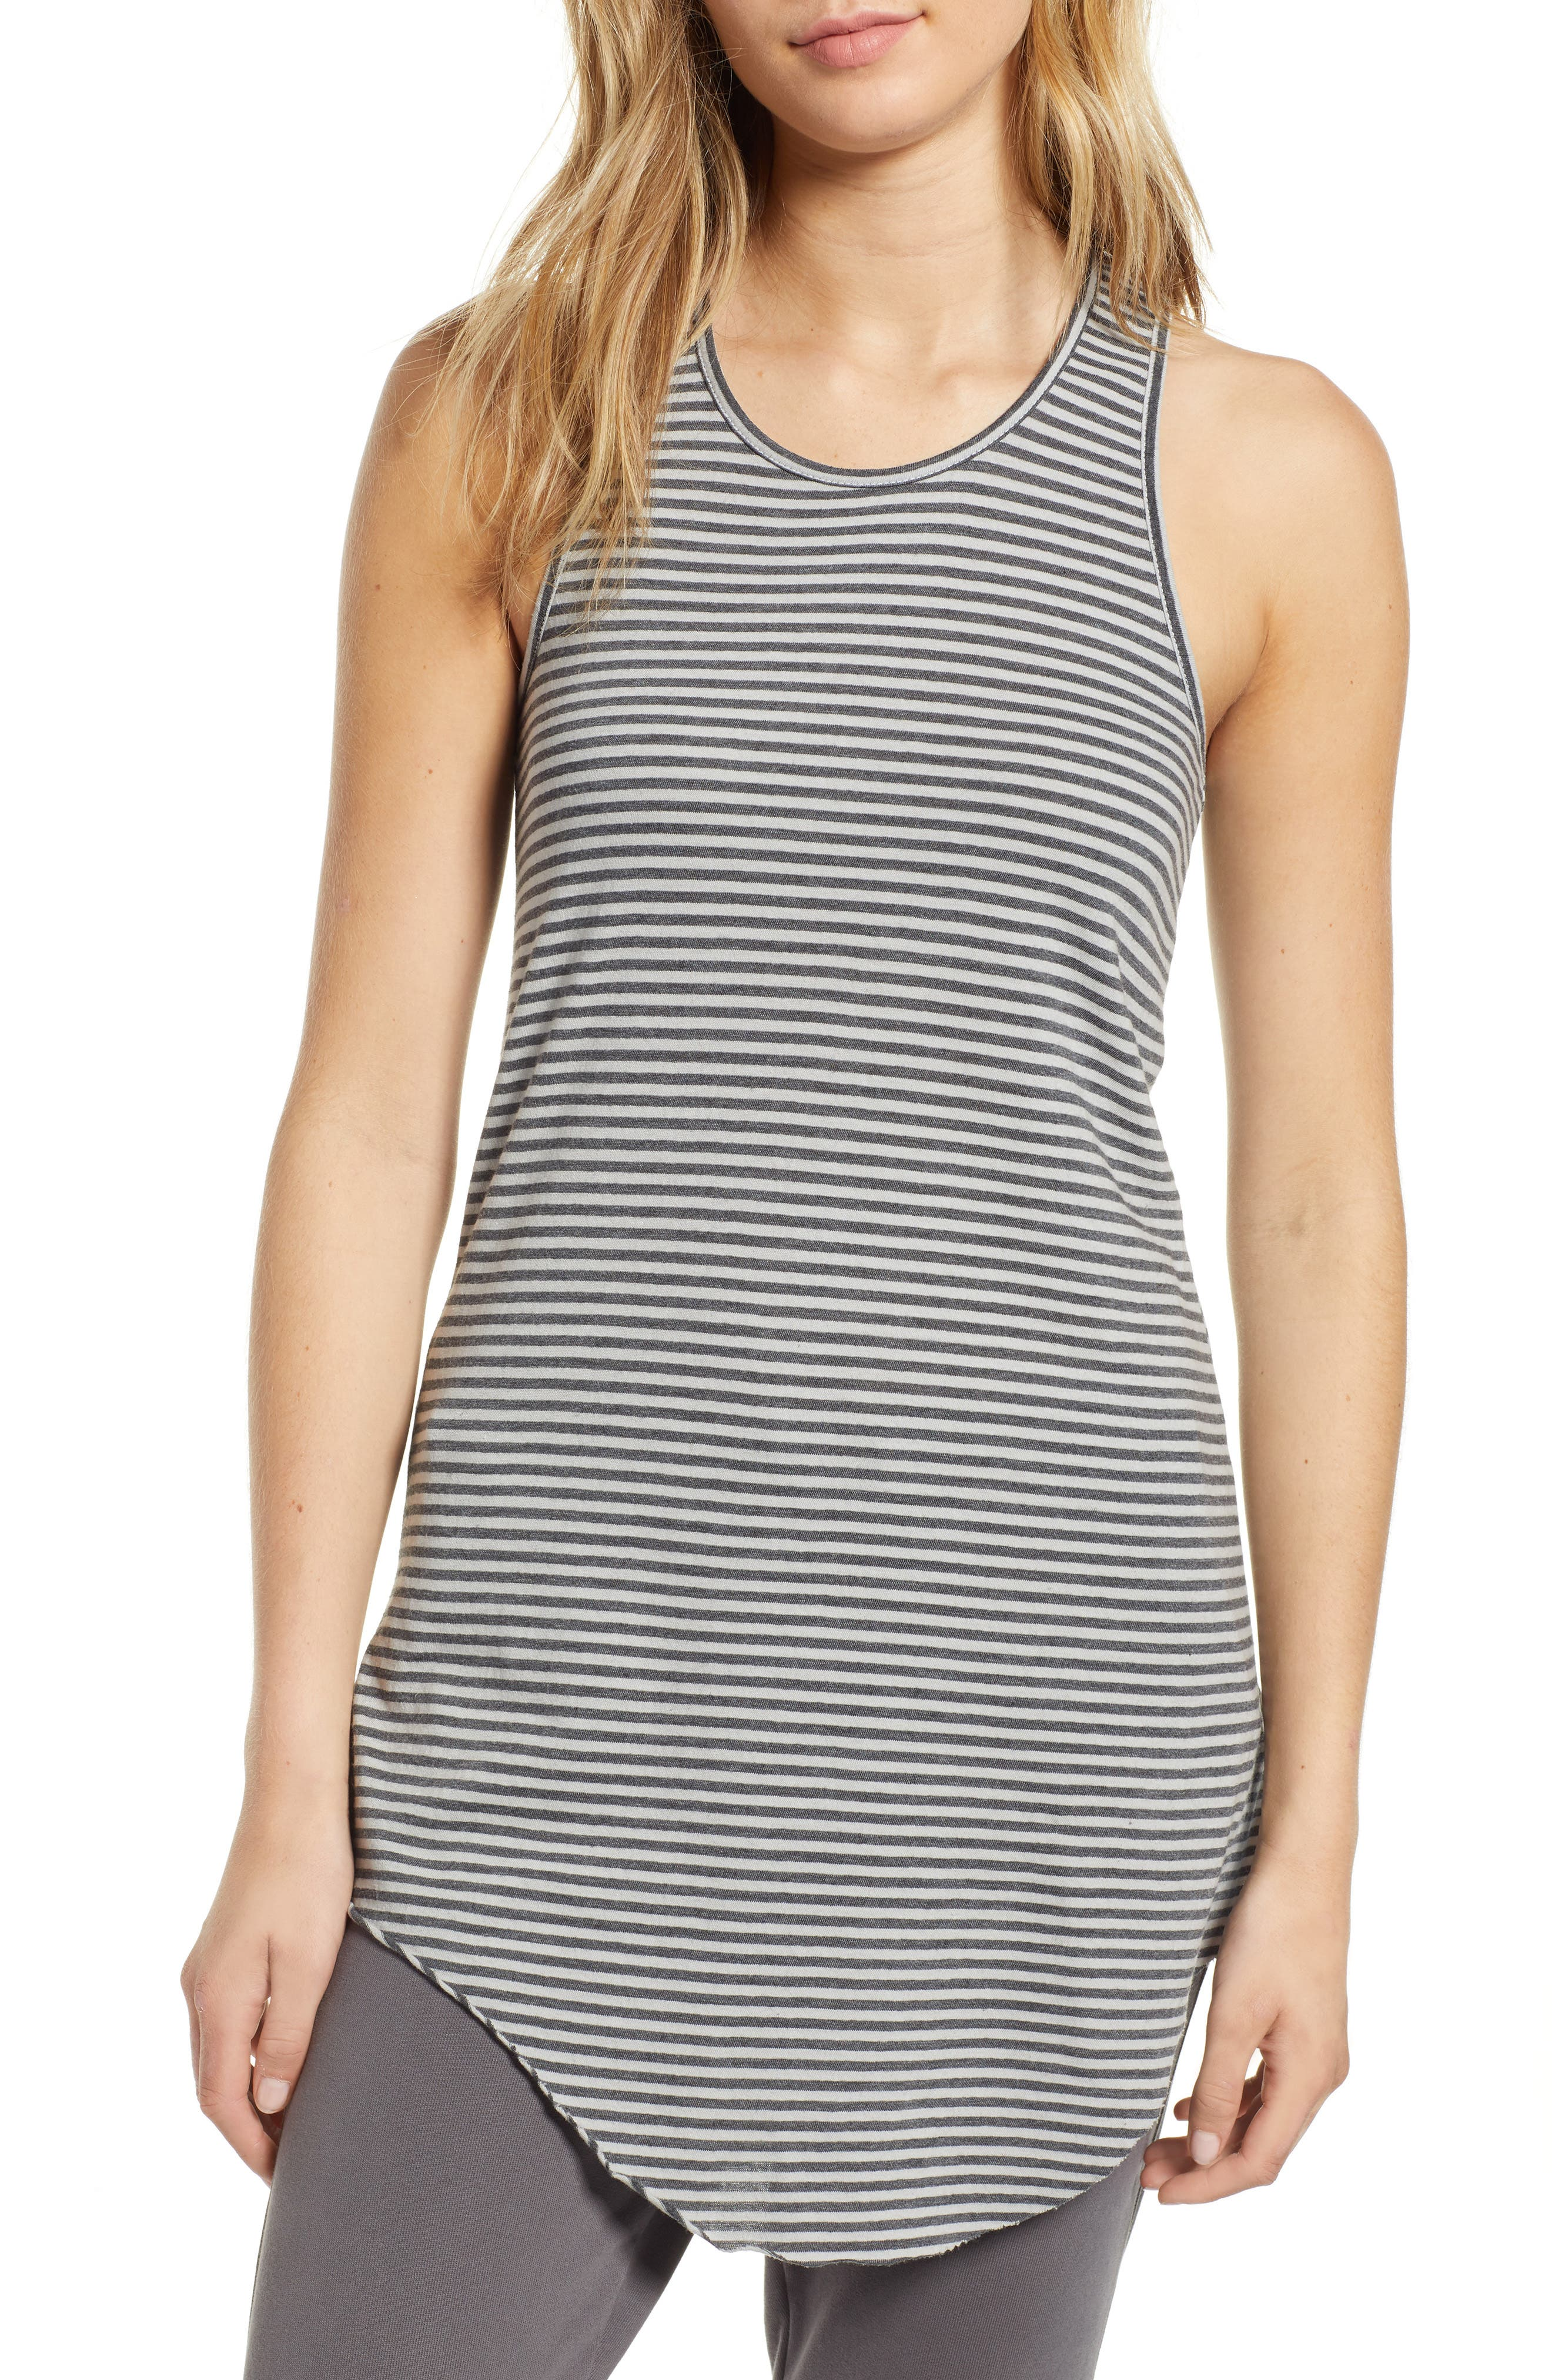 FRANK & EILEEN Tee Lab Stripe Long Layering Tank in Dime Stripe